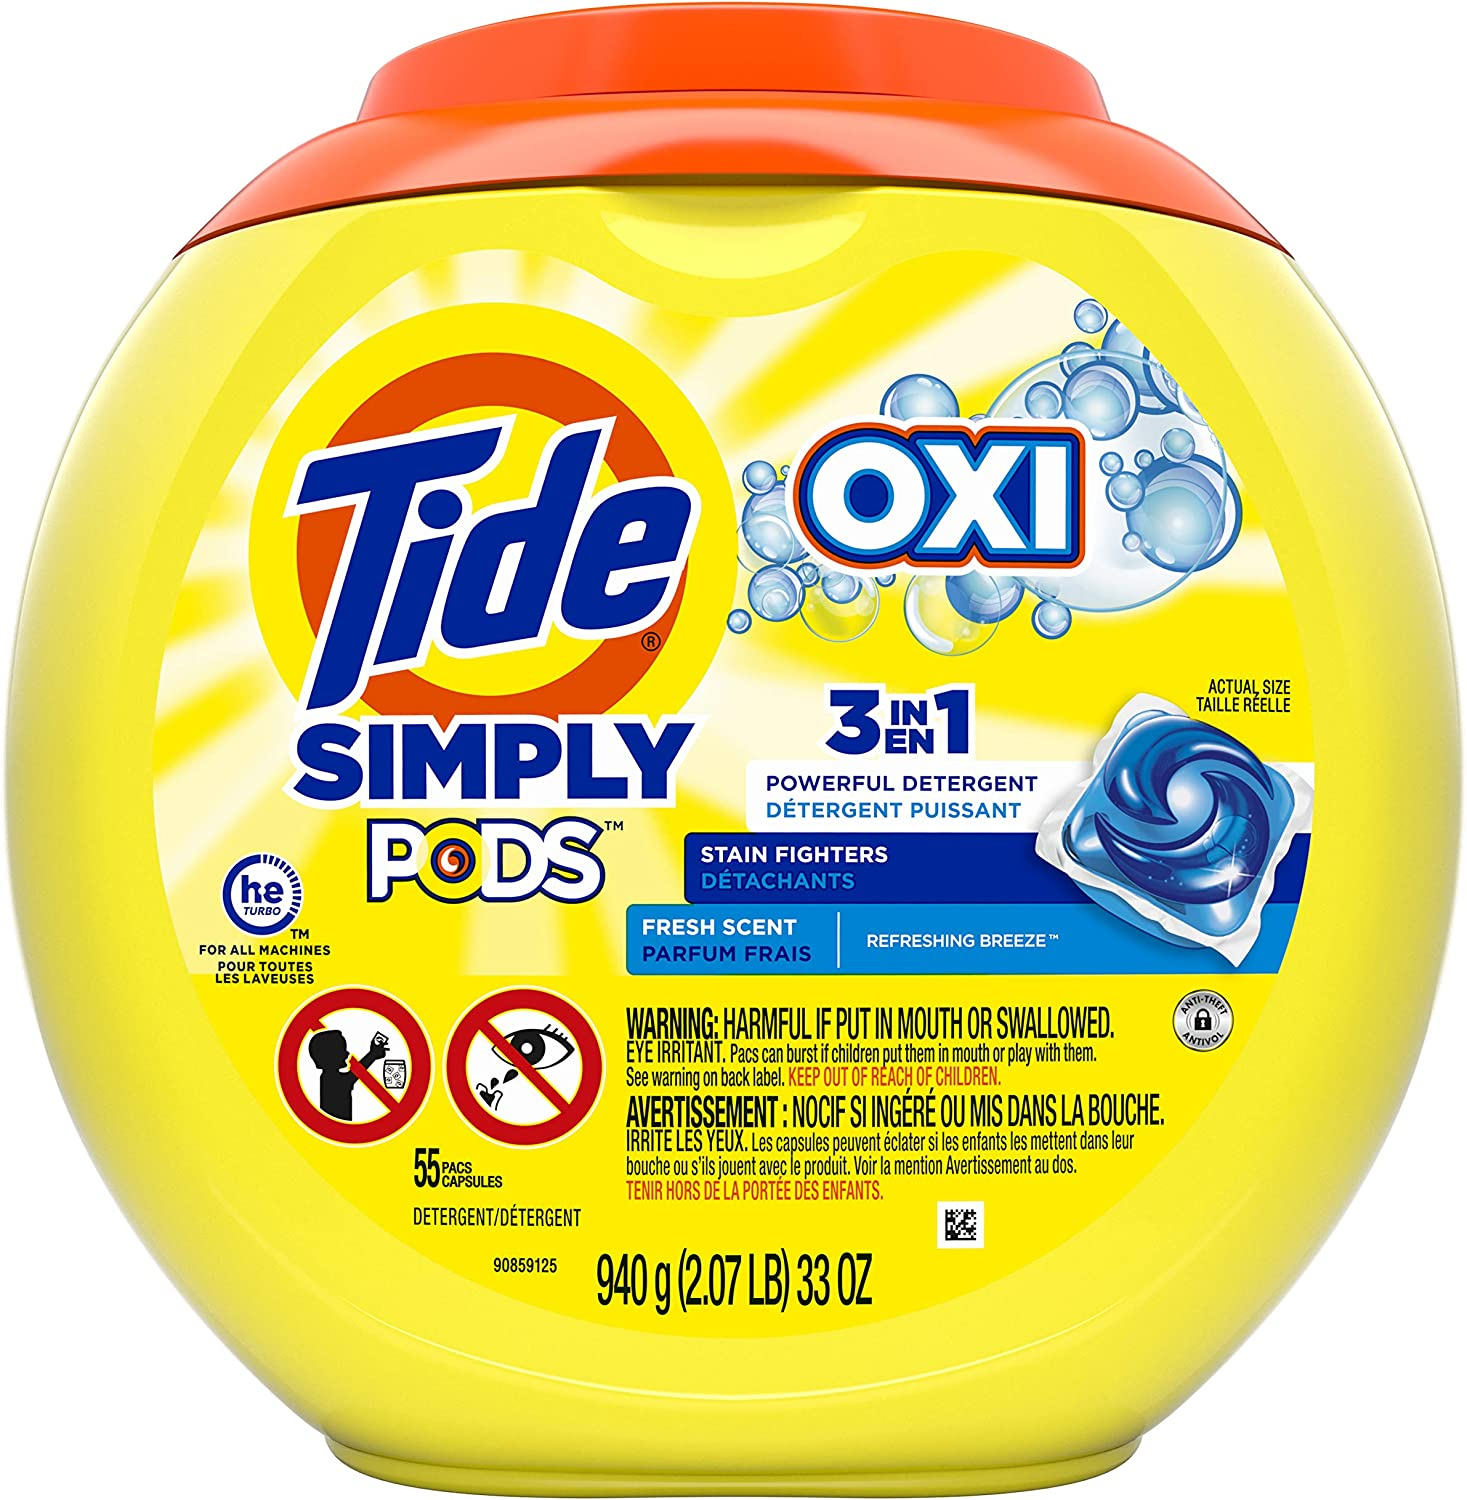 Tide Simply Pods +oxi Liquid Laundry Detergent Pacs Capsules, Refreshing Breeze, 55 Count